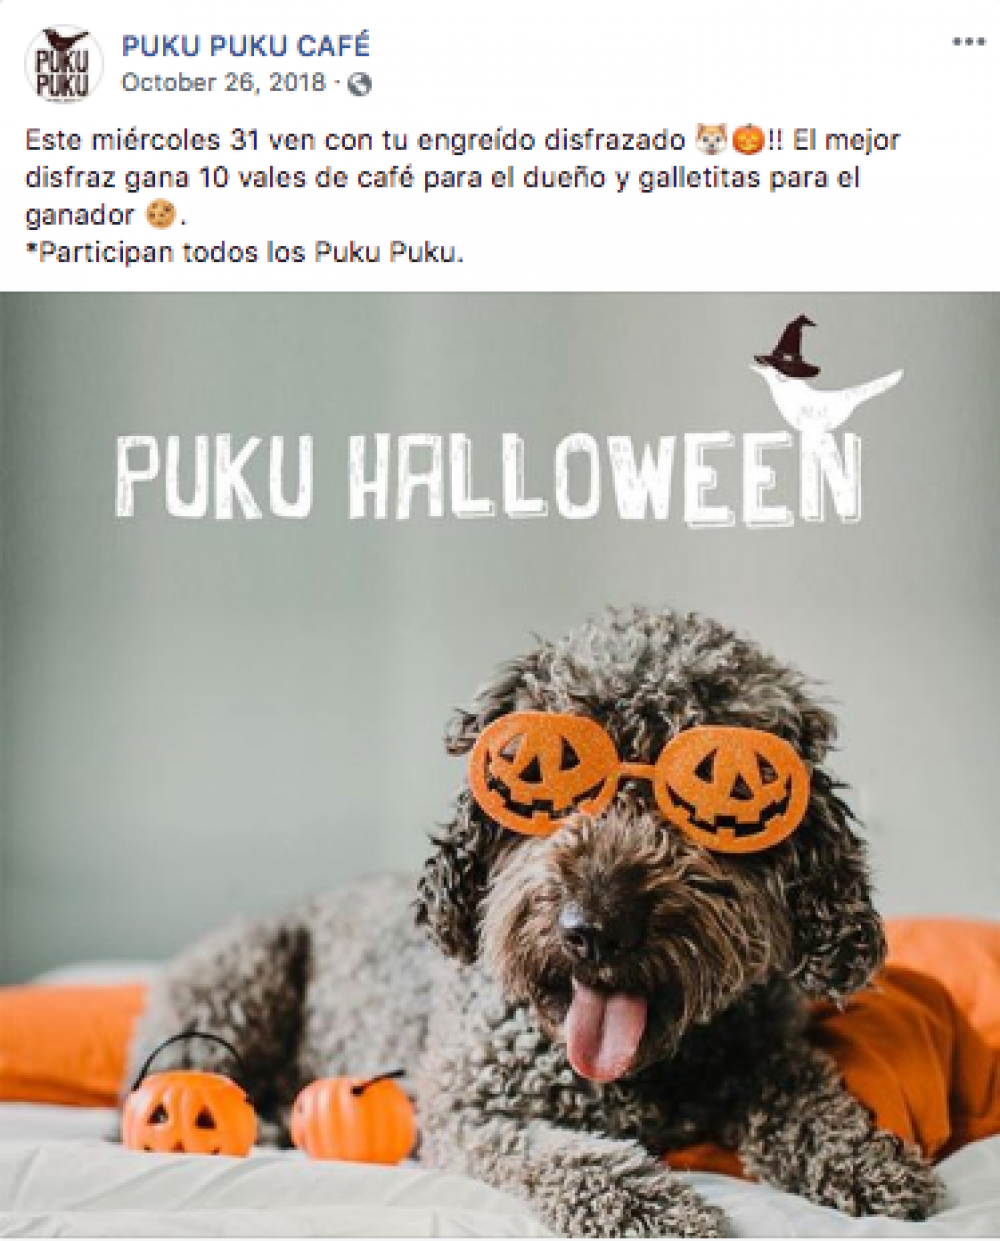 puku puku cafe pet friendly 2